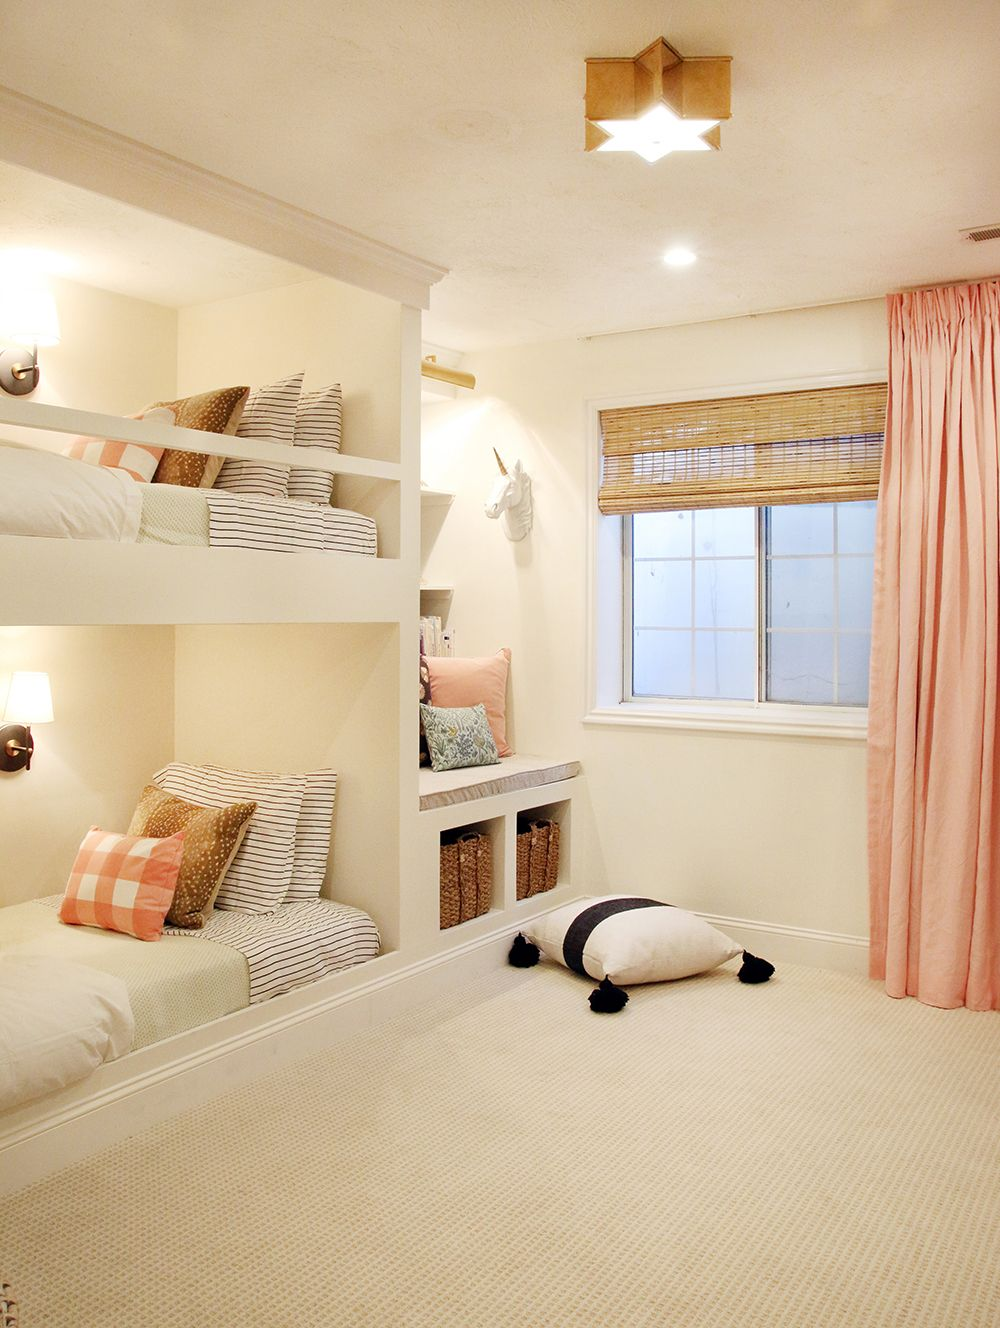 Superbe The Sweetest Girlsu0027 Room With Built In Bunk Beds, A Starry Brass Light  Fixture From @chrislovesjulia